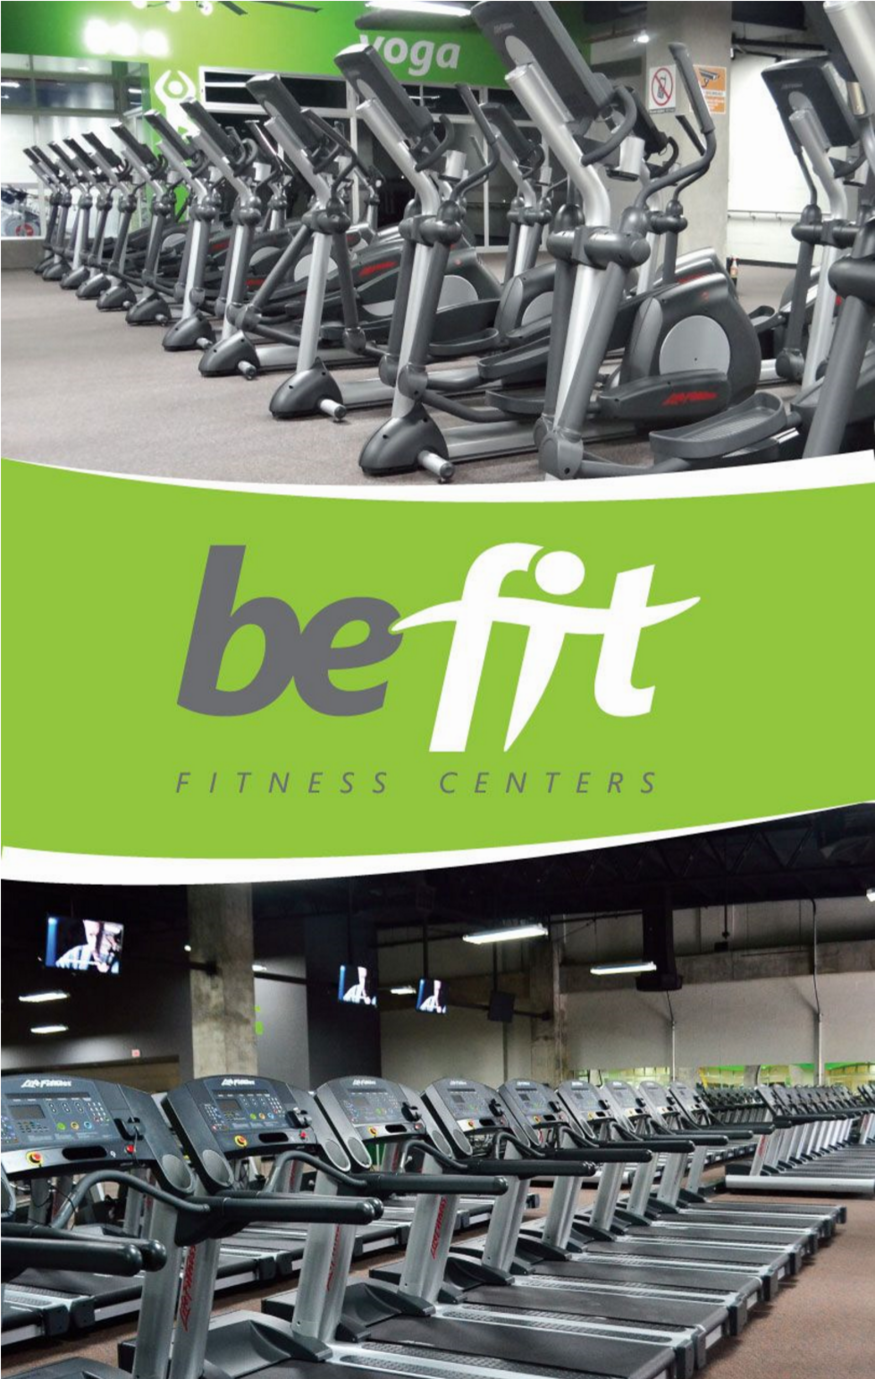 Be Fit equipment and logo